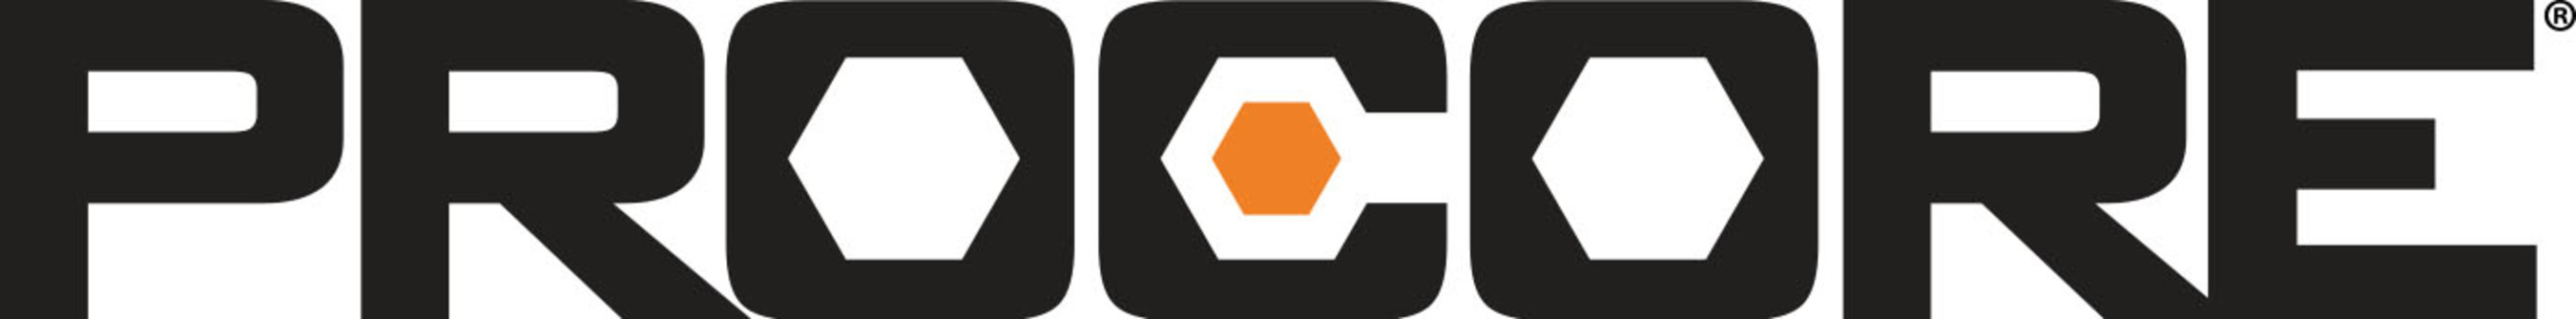 Procore Cloud-Based Construction Software